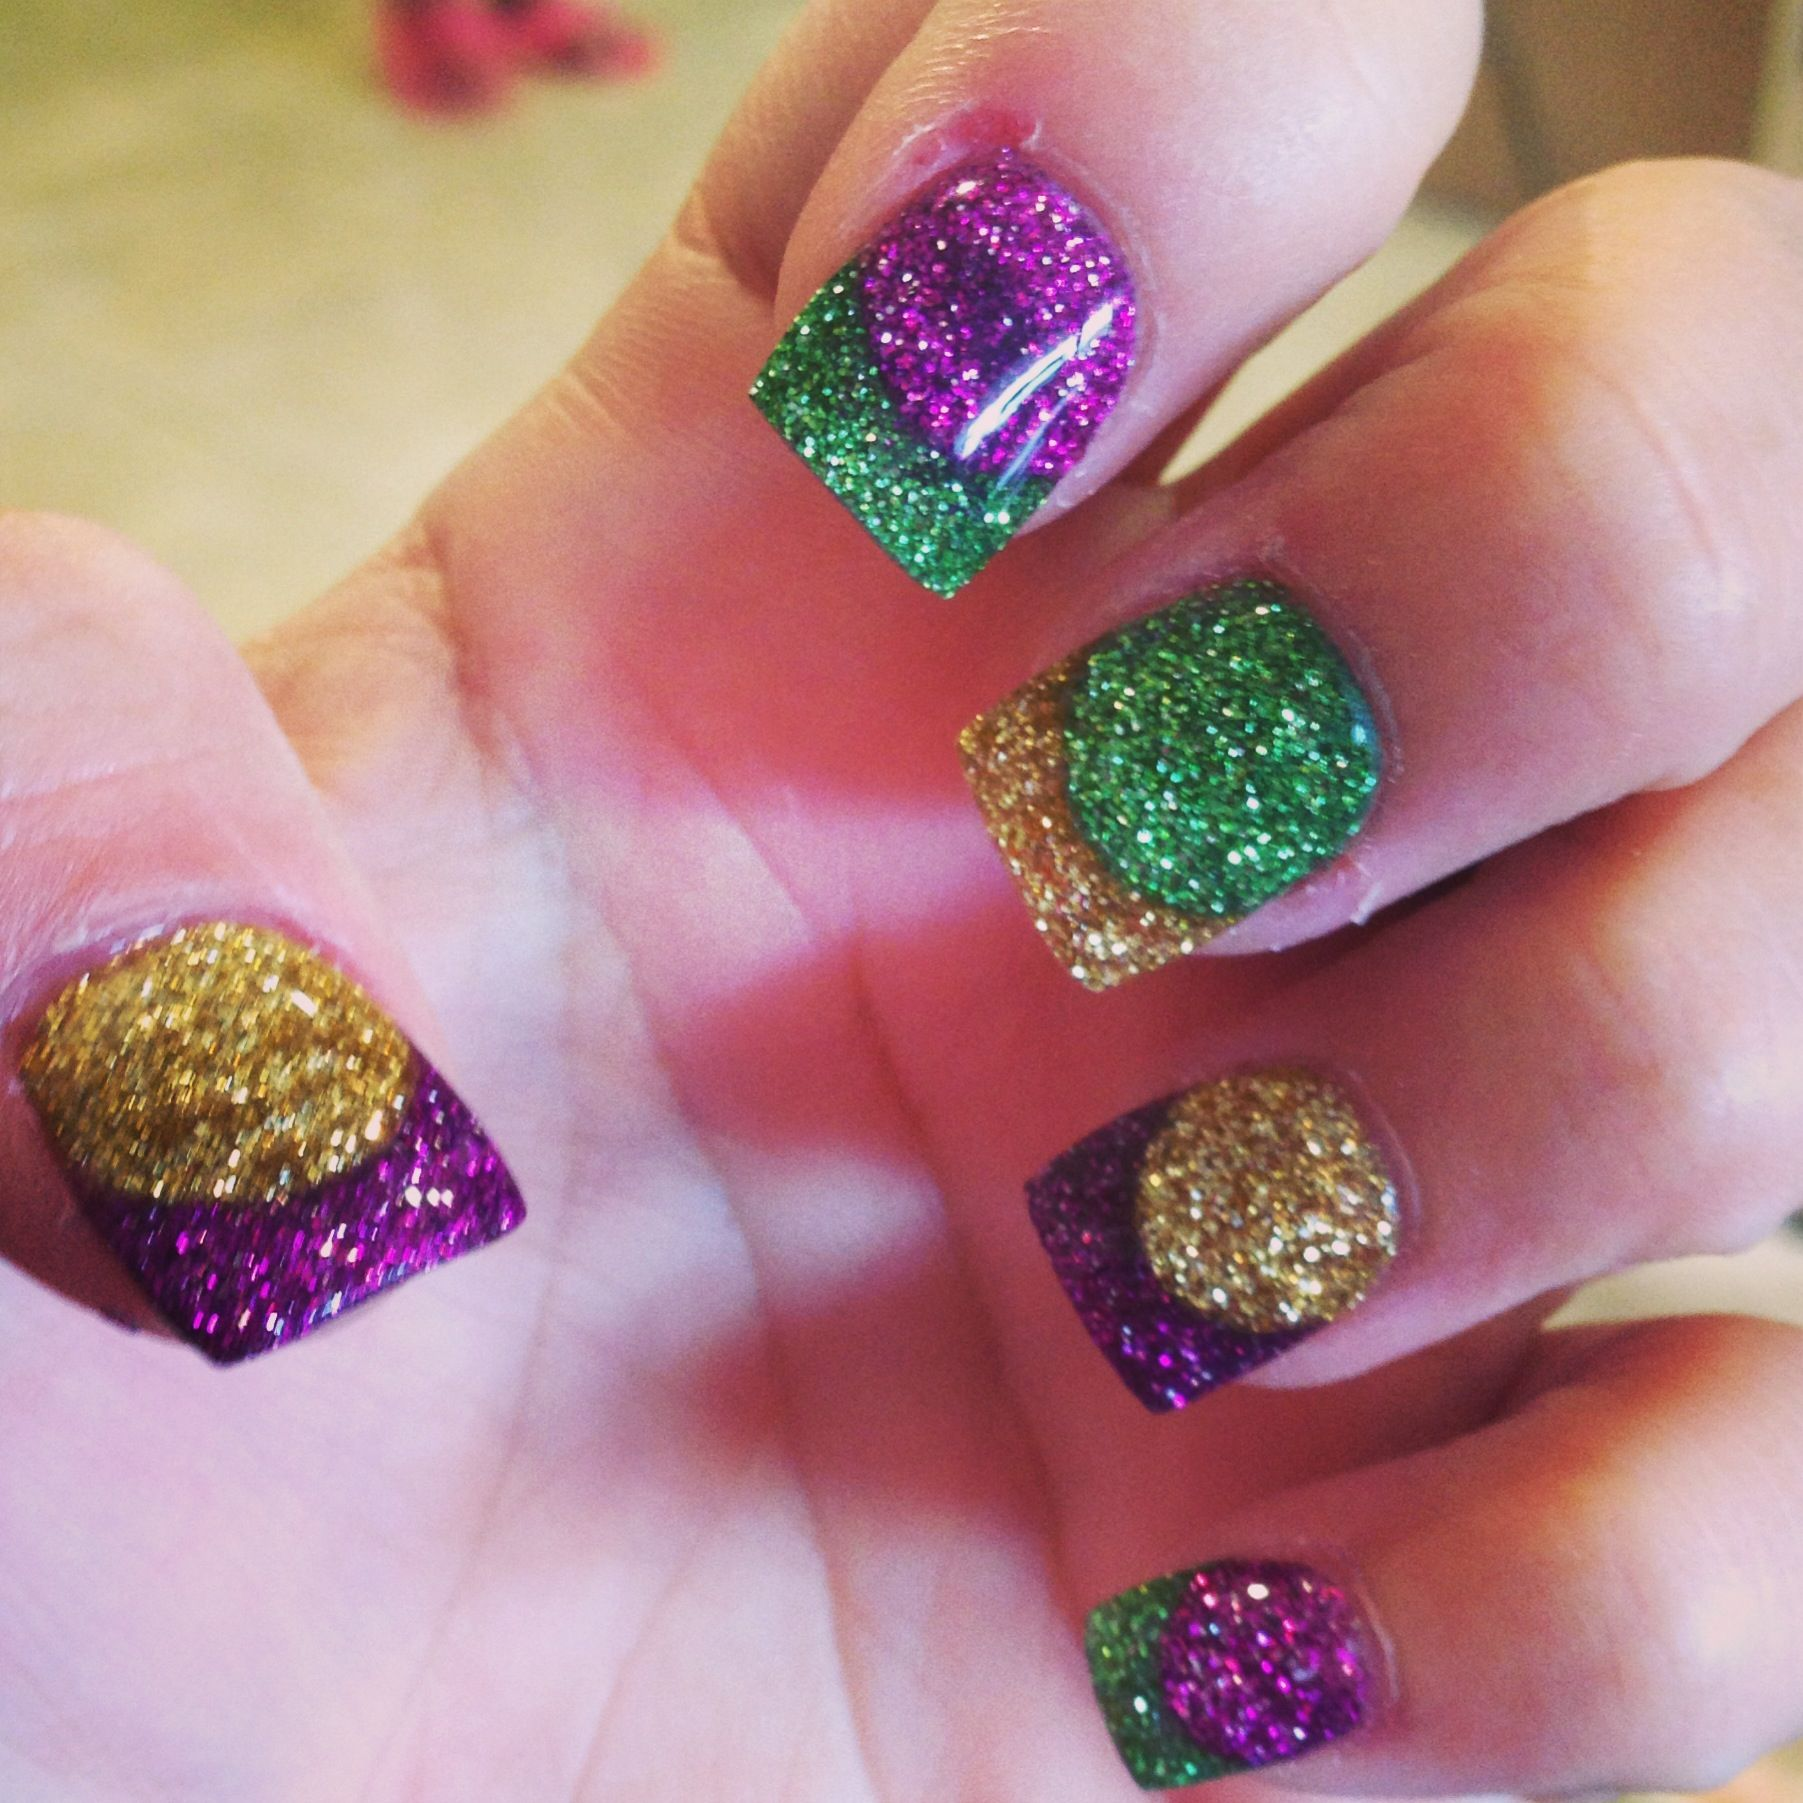 My mArDi gRaS naiLs #MardiGras #NickyBaby | tOtaLLy NAiLed iT ...